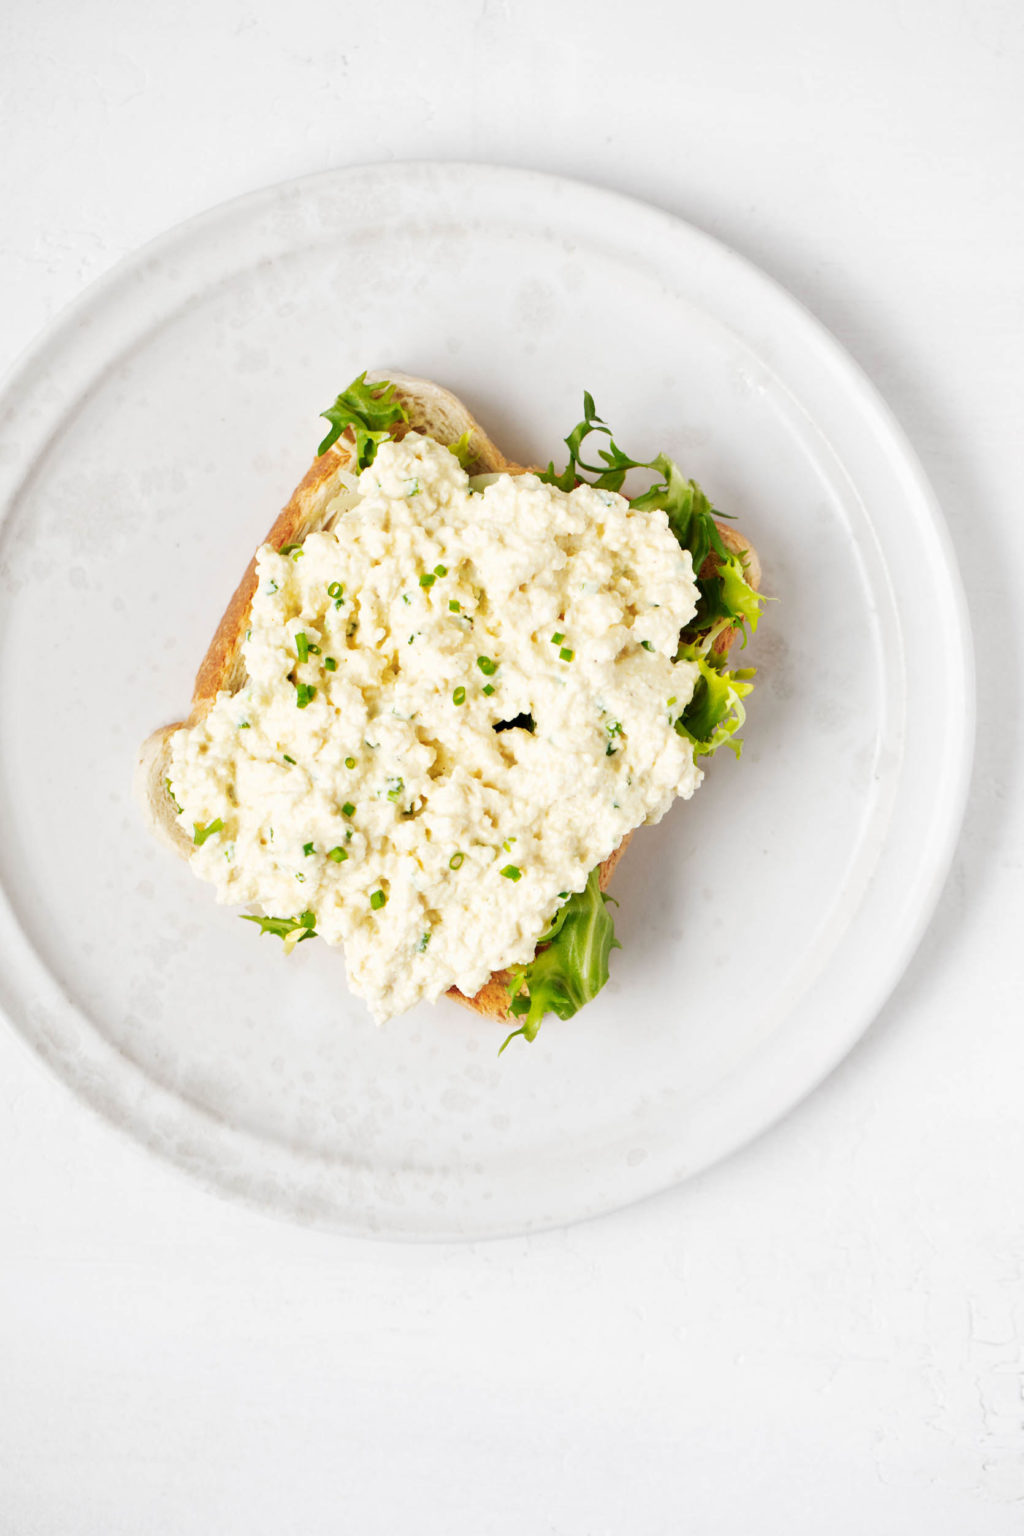 A slice of toast has been covered in a vegan tofu egg salad and a single green slice of lettuce. It rests on a white ceramic plate.